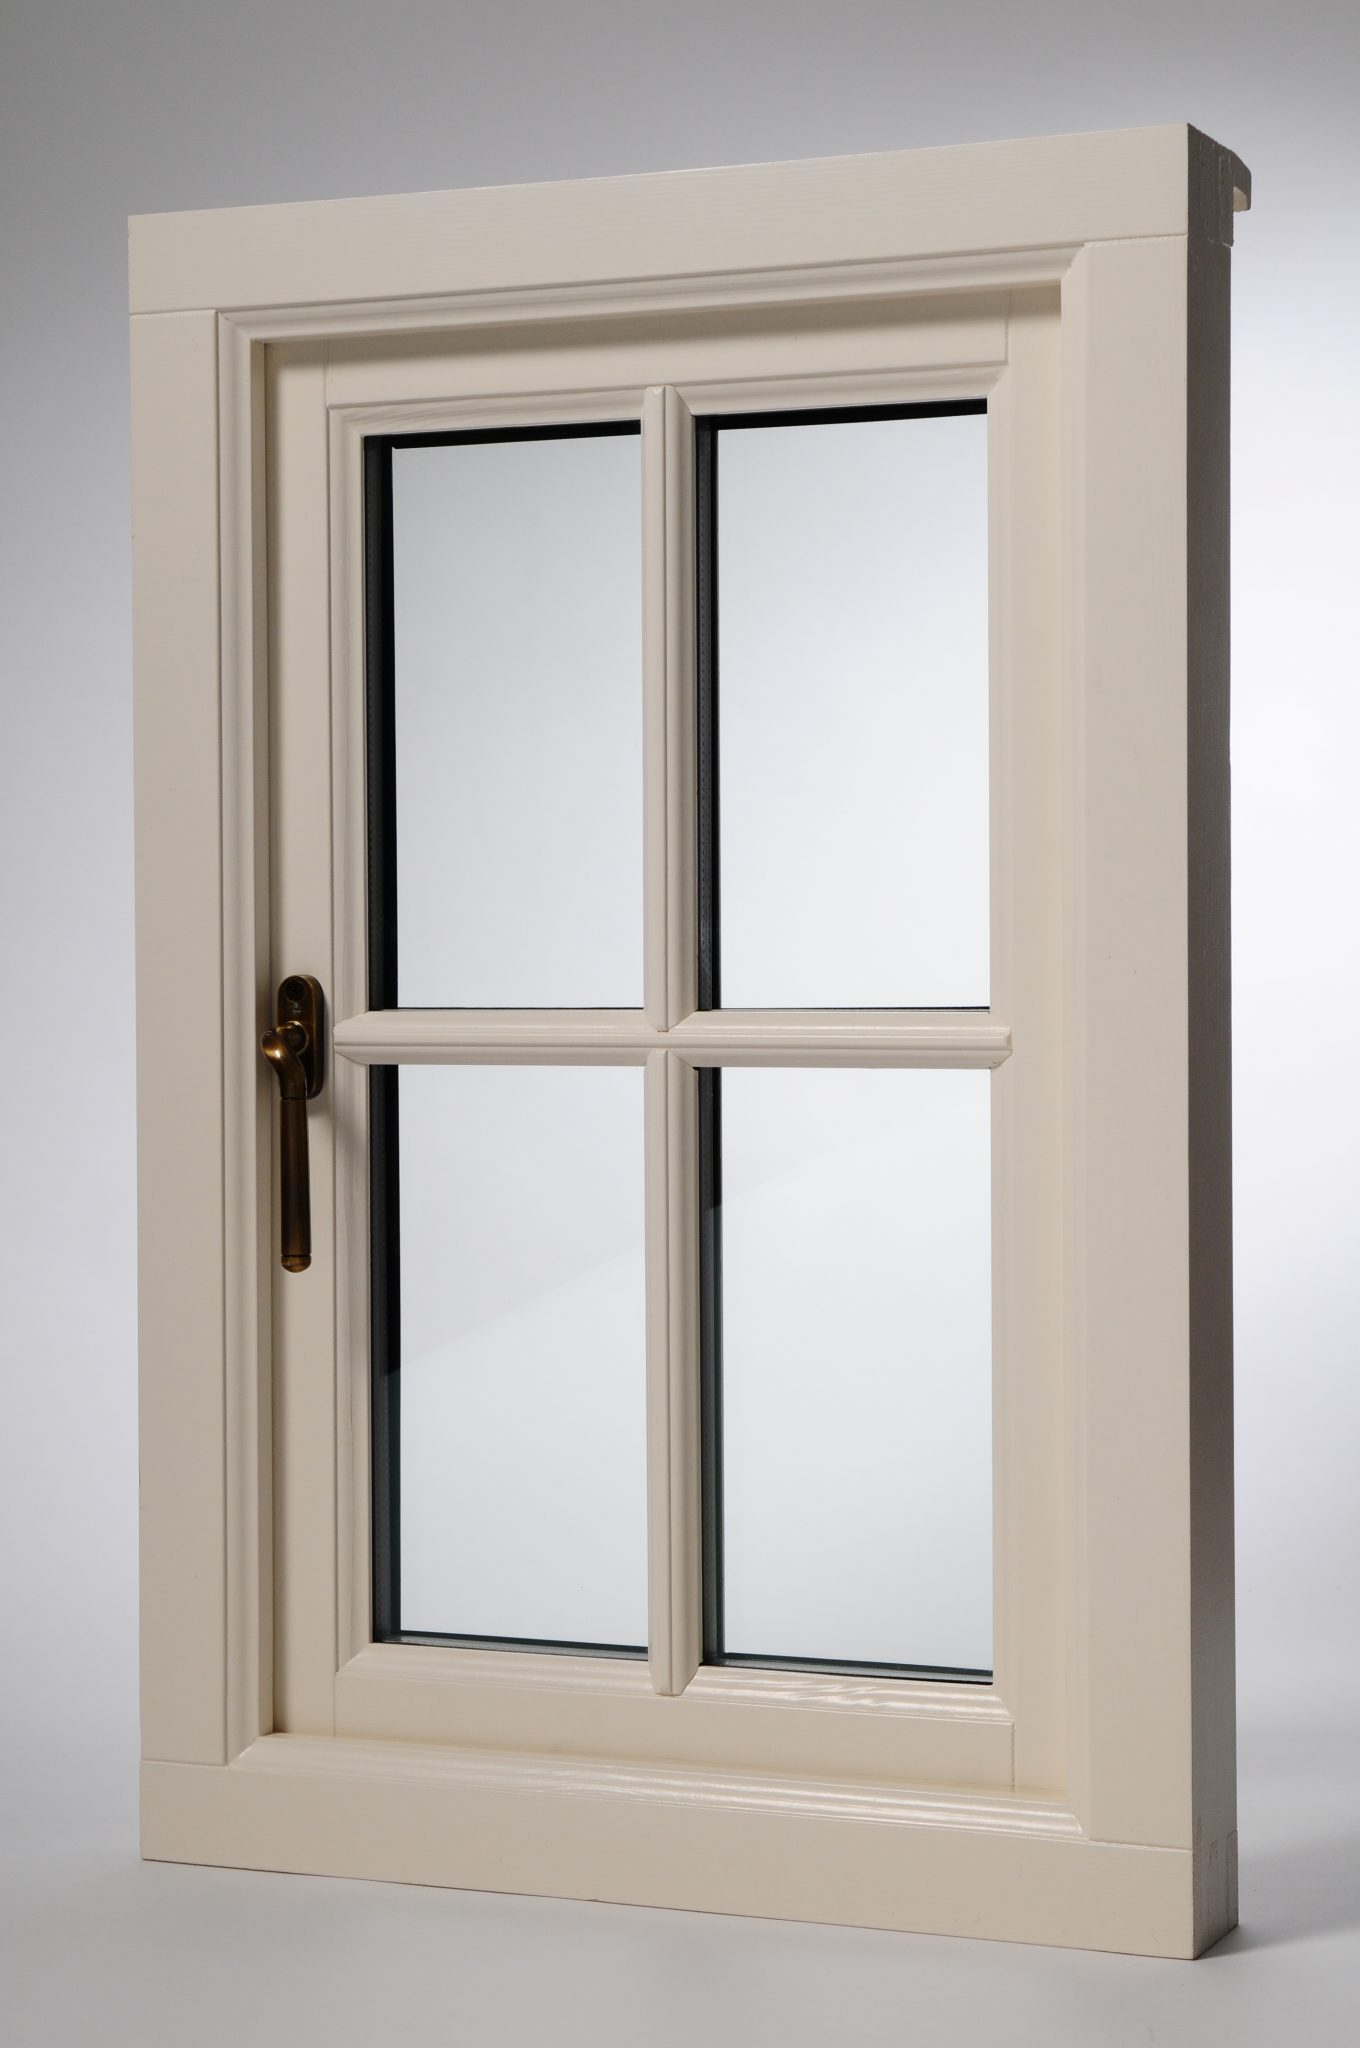 Windows window manufacturers for Window manufacturers